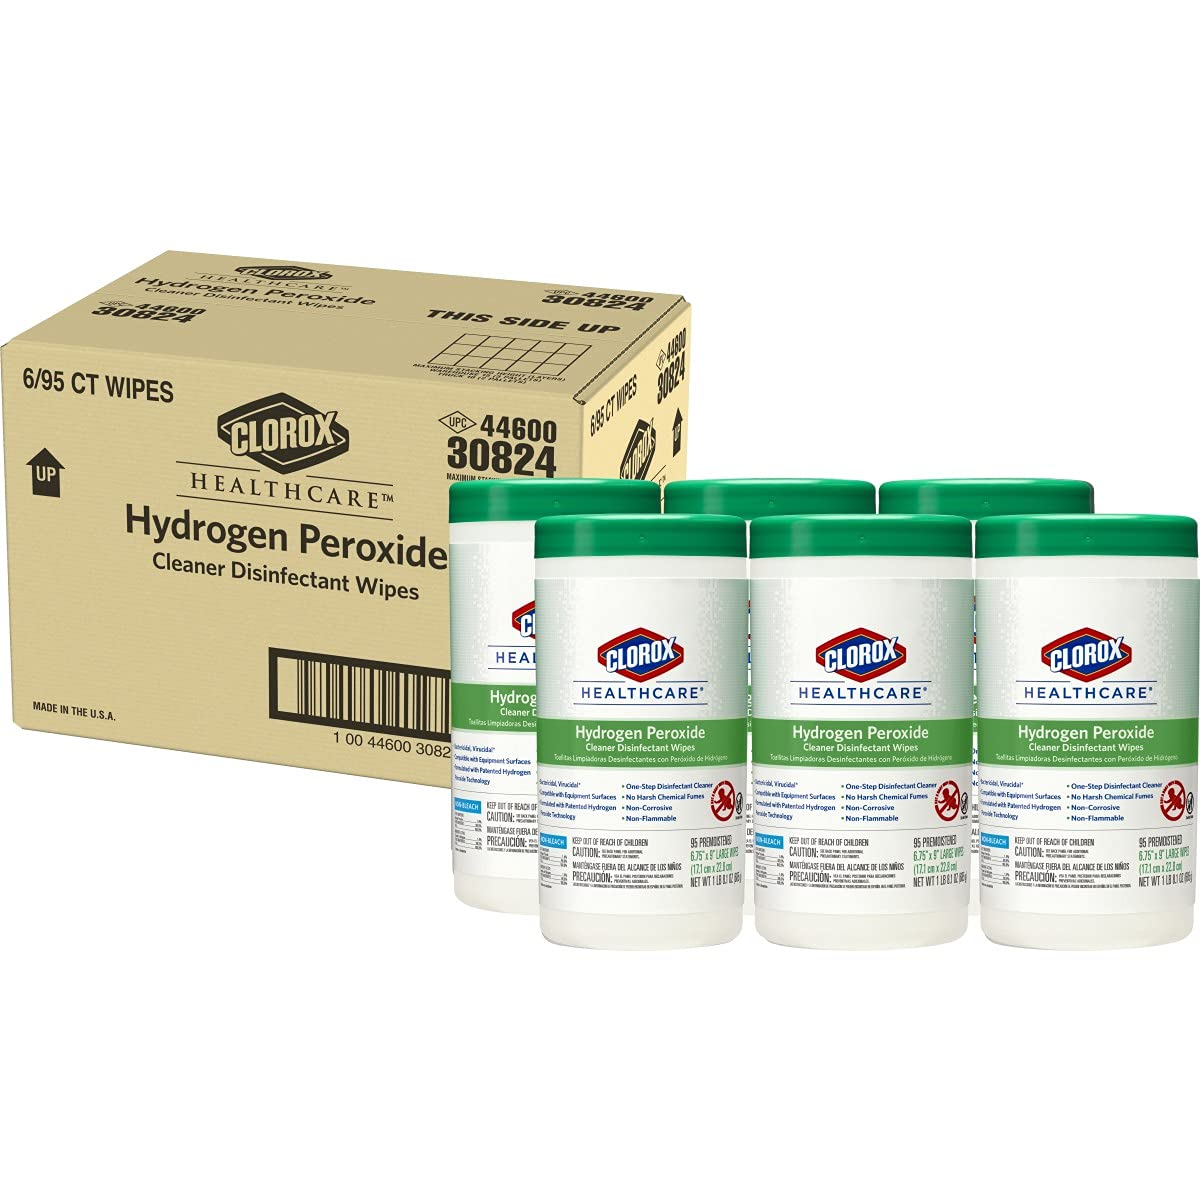 Clorox Healthcare Hydrogen Peroxide Ranking TOP4 Cleaner Ranking TOP5 Wipes Disinfectant